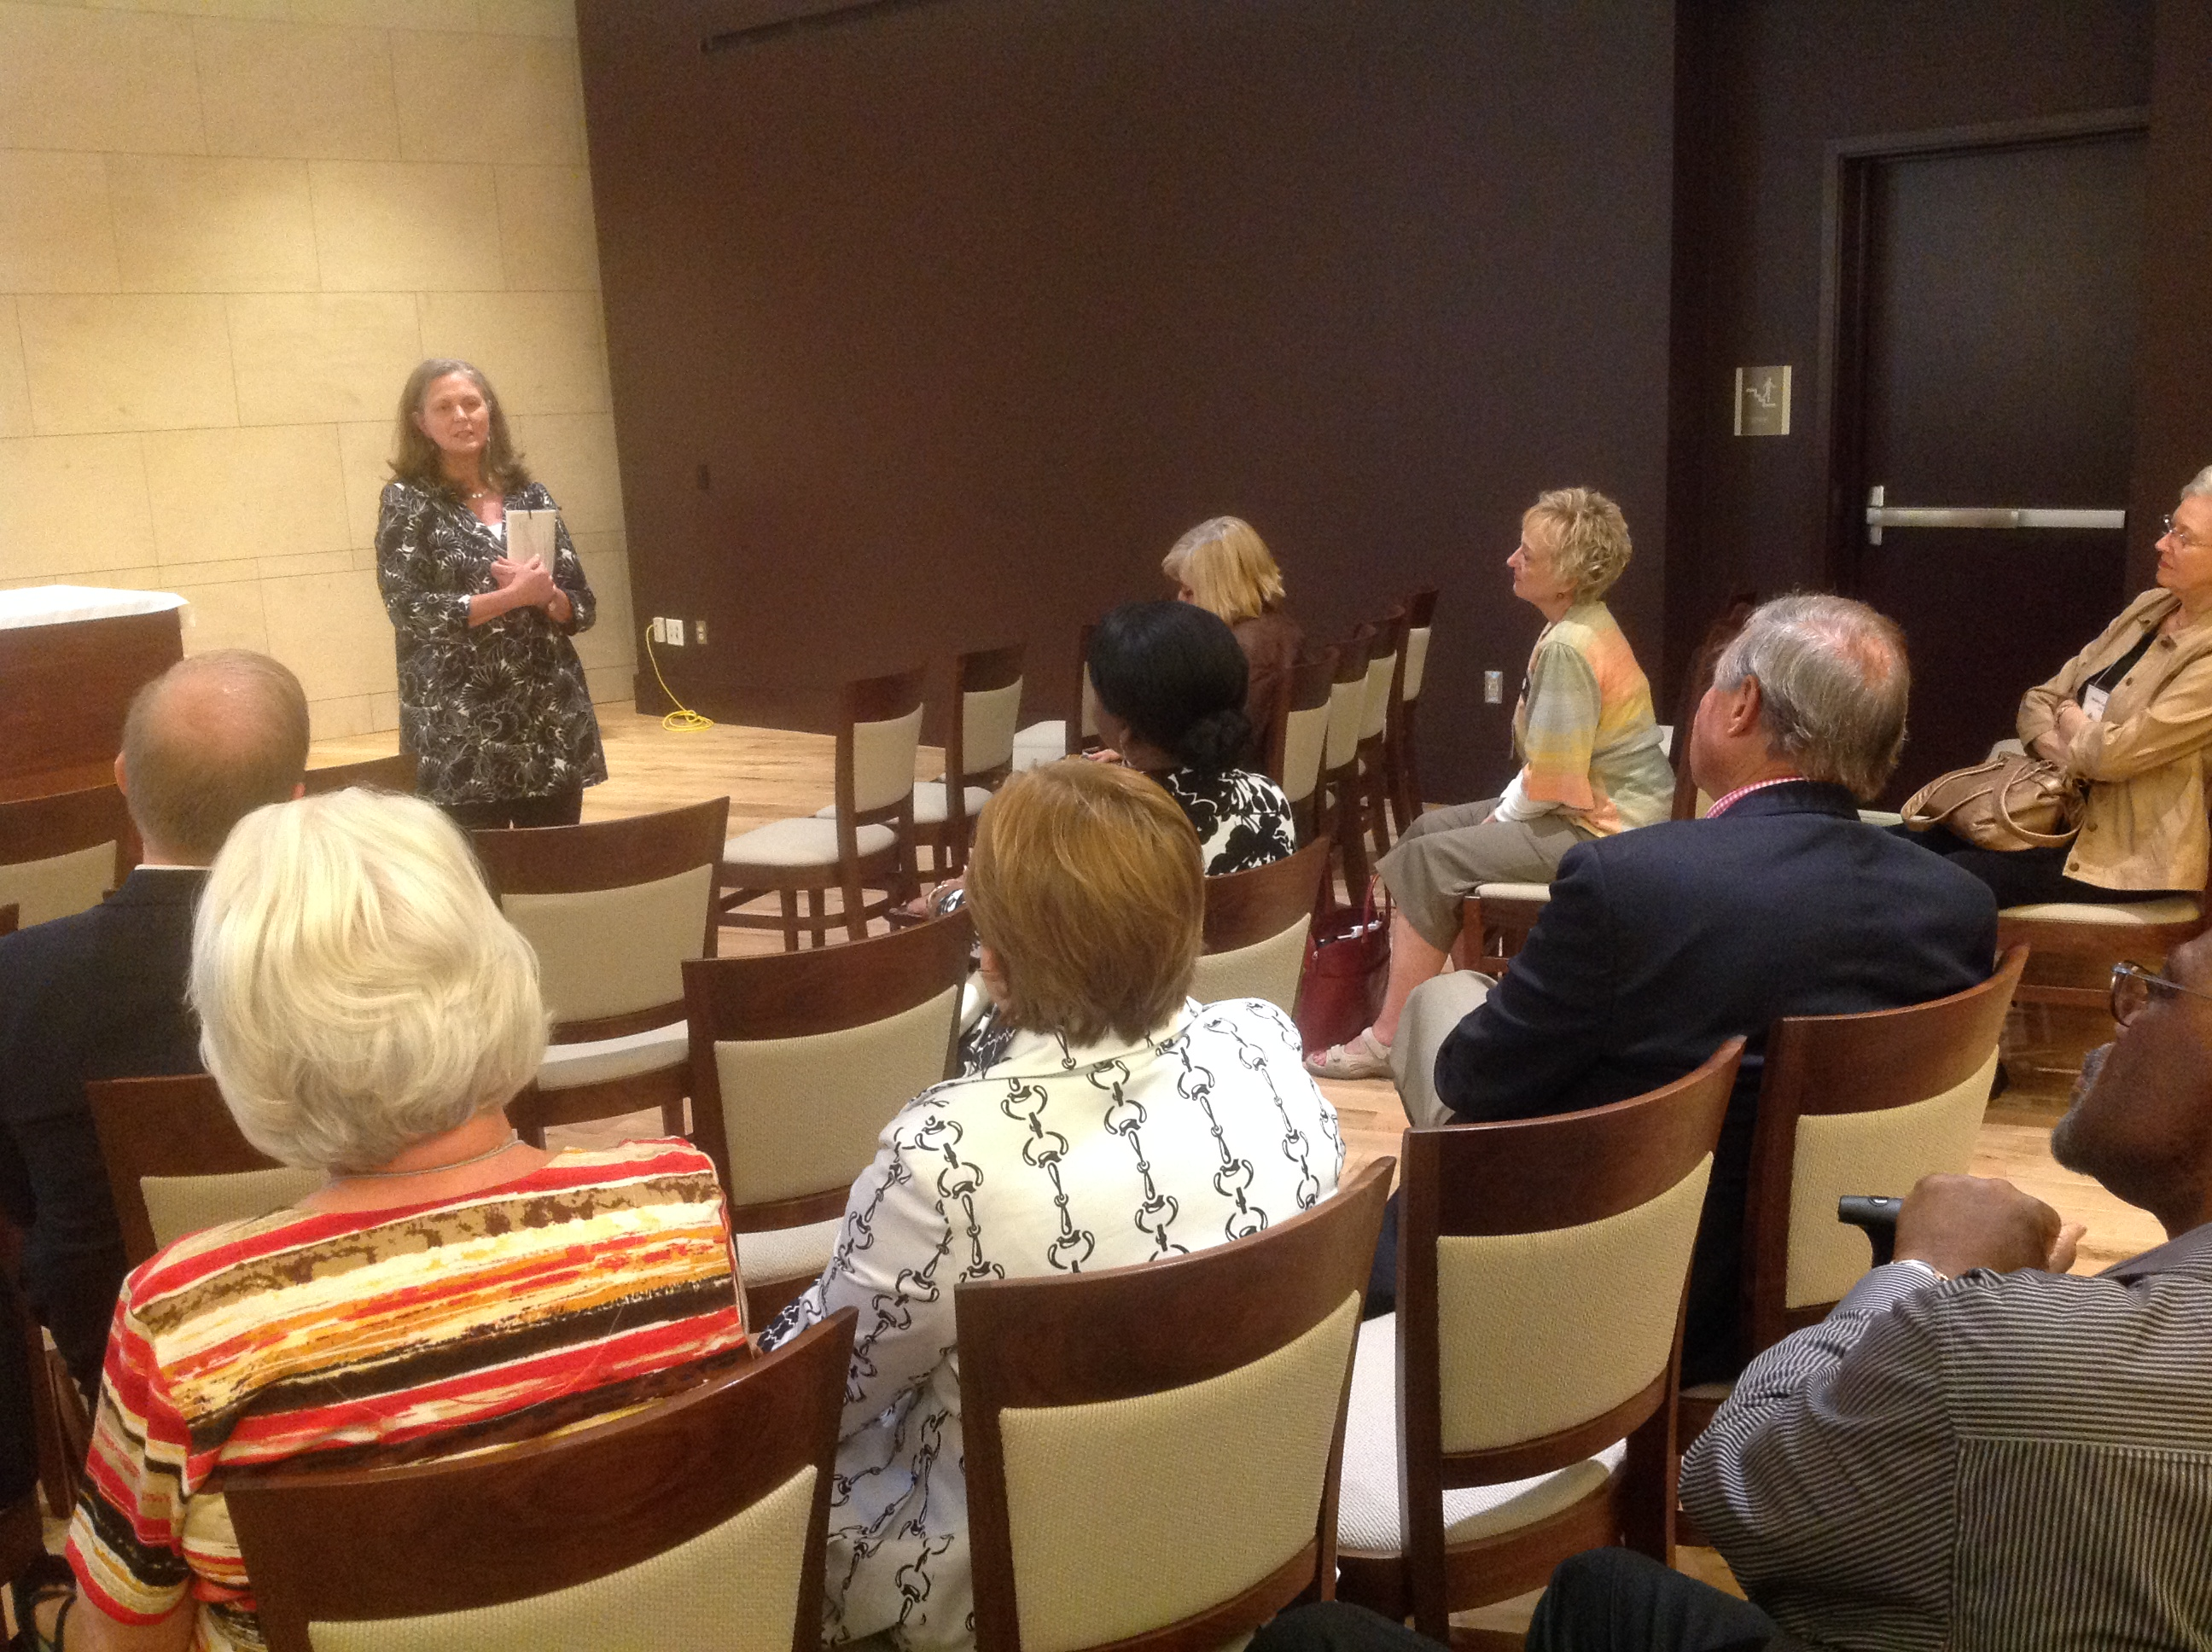 Dean Love addresses SEJCCA in New Teaching Room at Candler